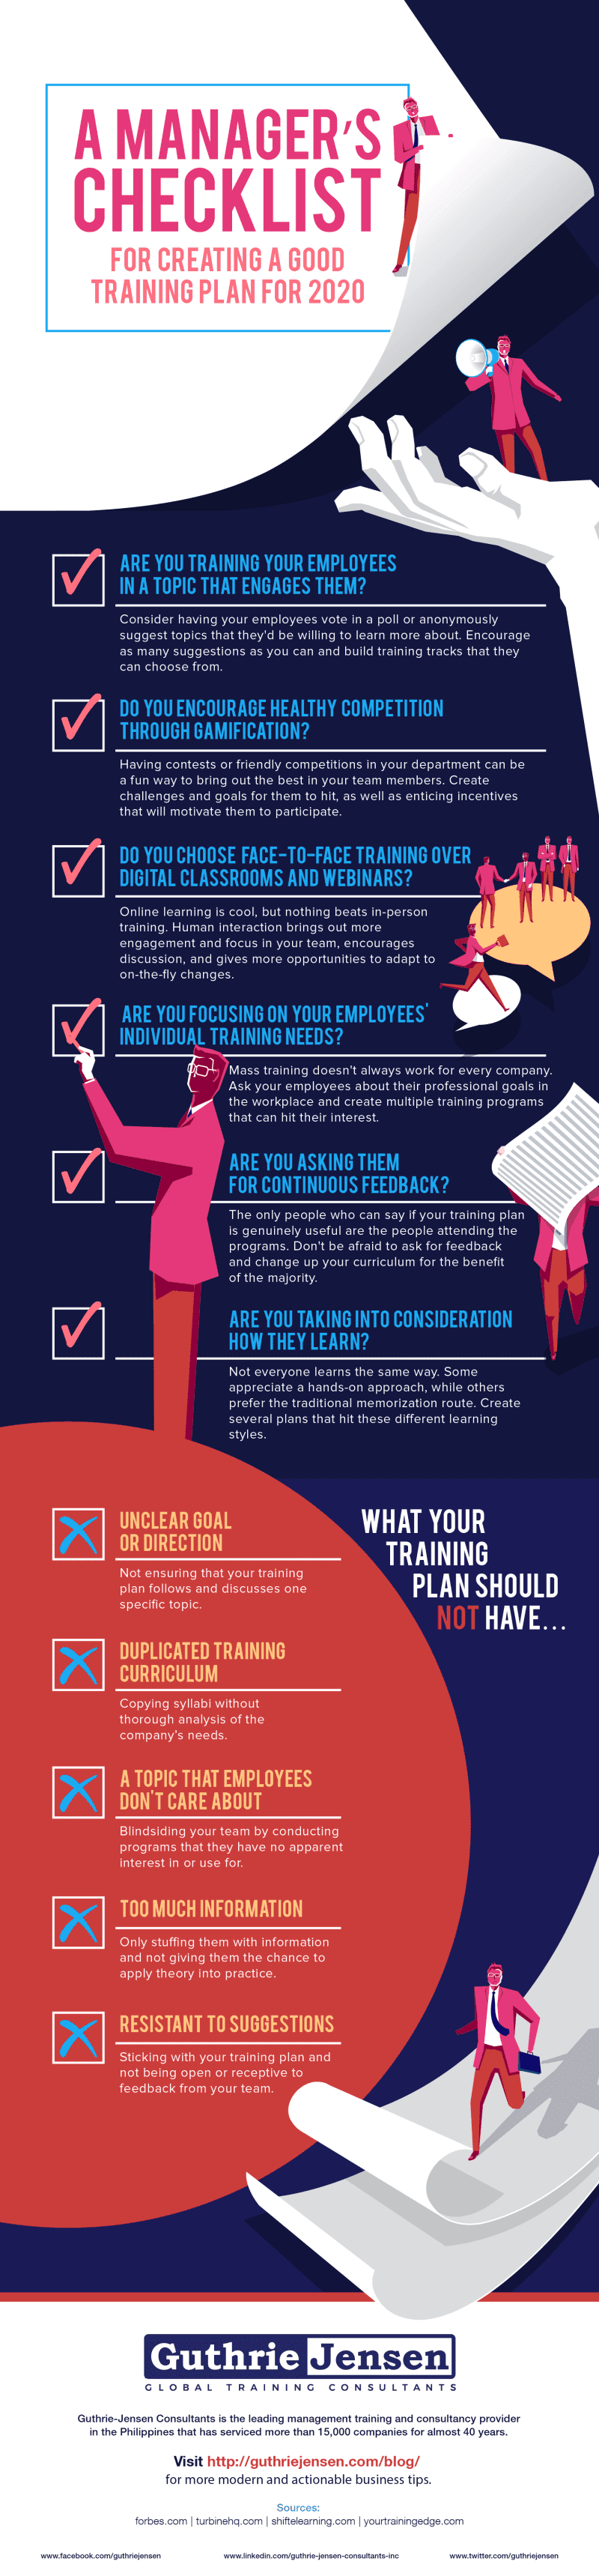 A Manager's Checklist for Creating a Good Training Plan for 2020 #infographic